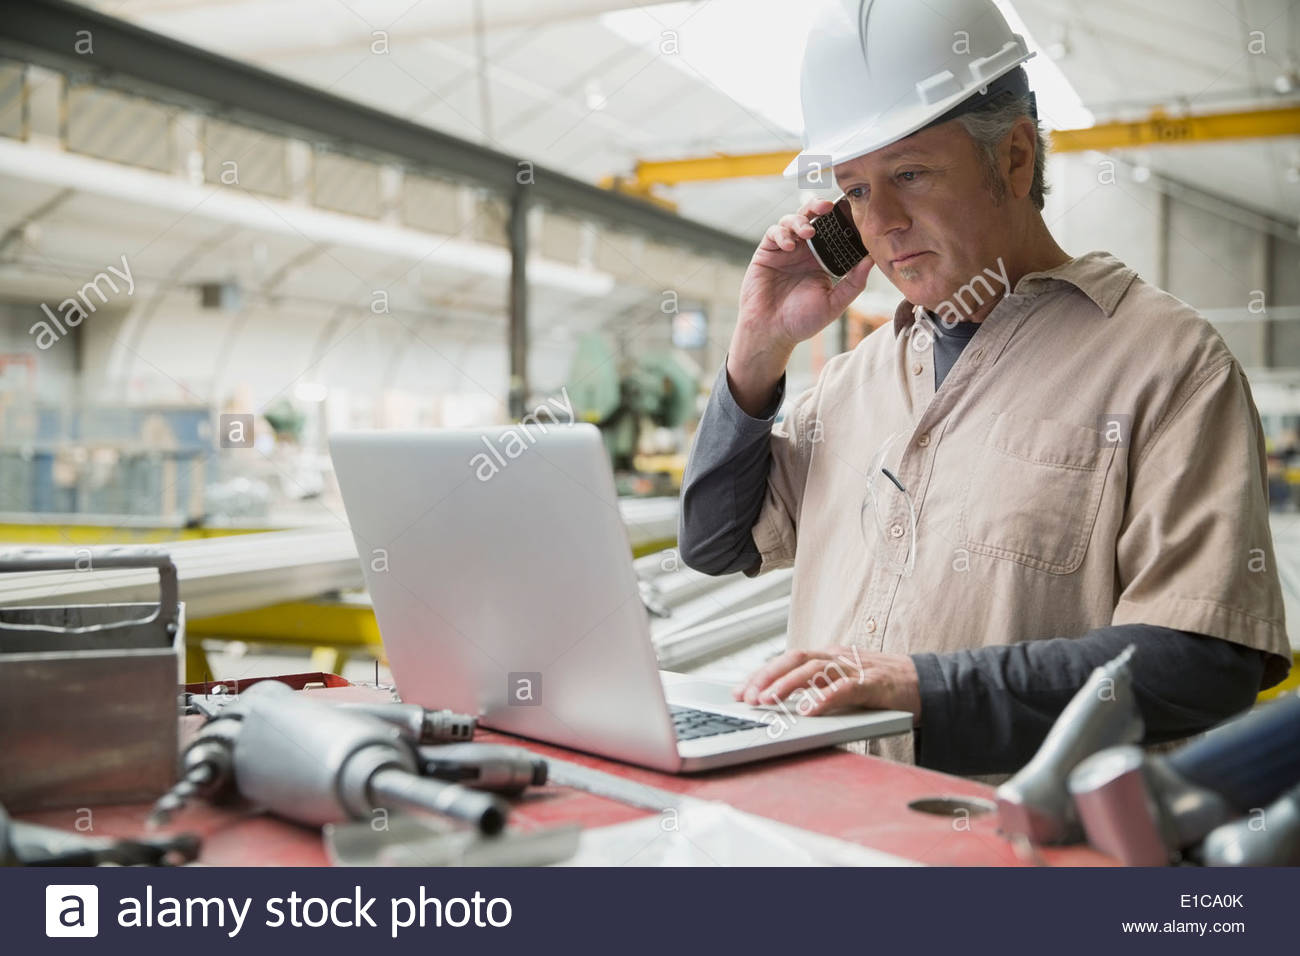 Worker at laptop in manufacturing plant - Stock Image